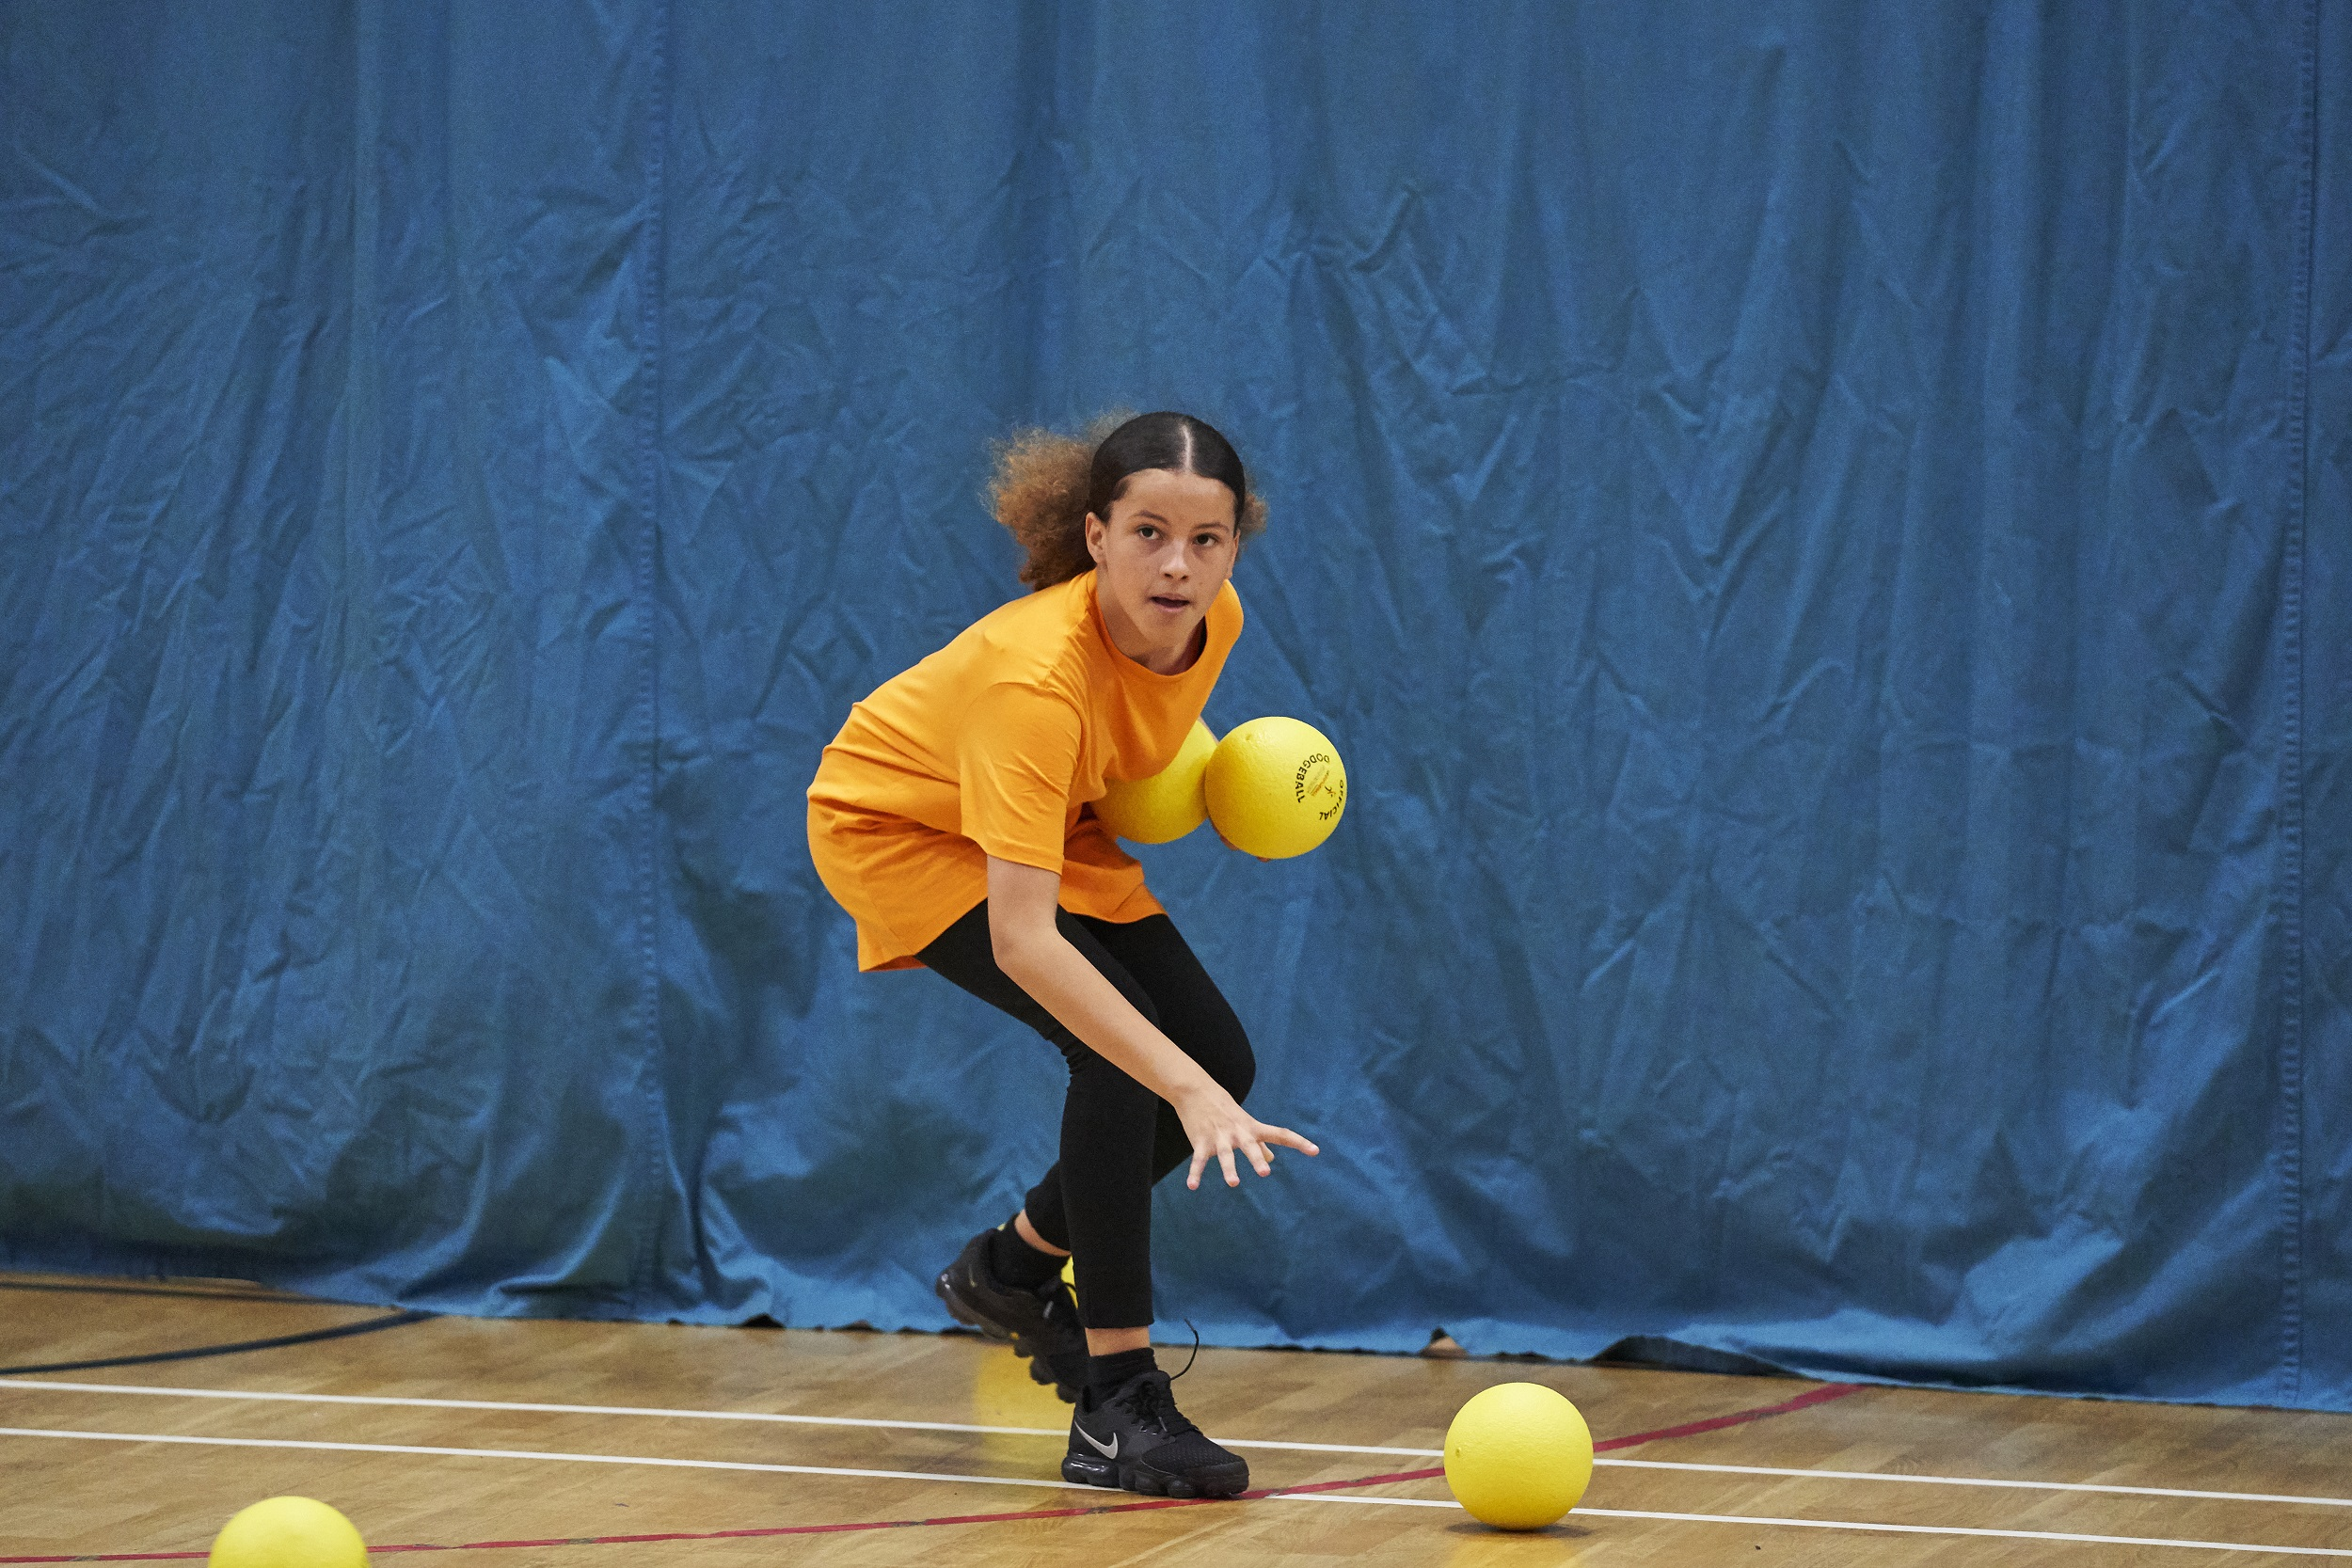 young girl plays dodgeball